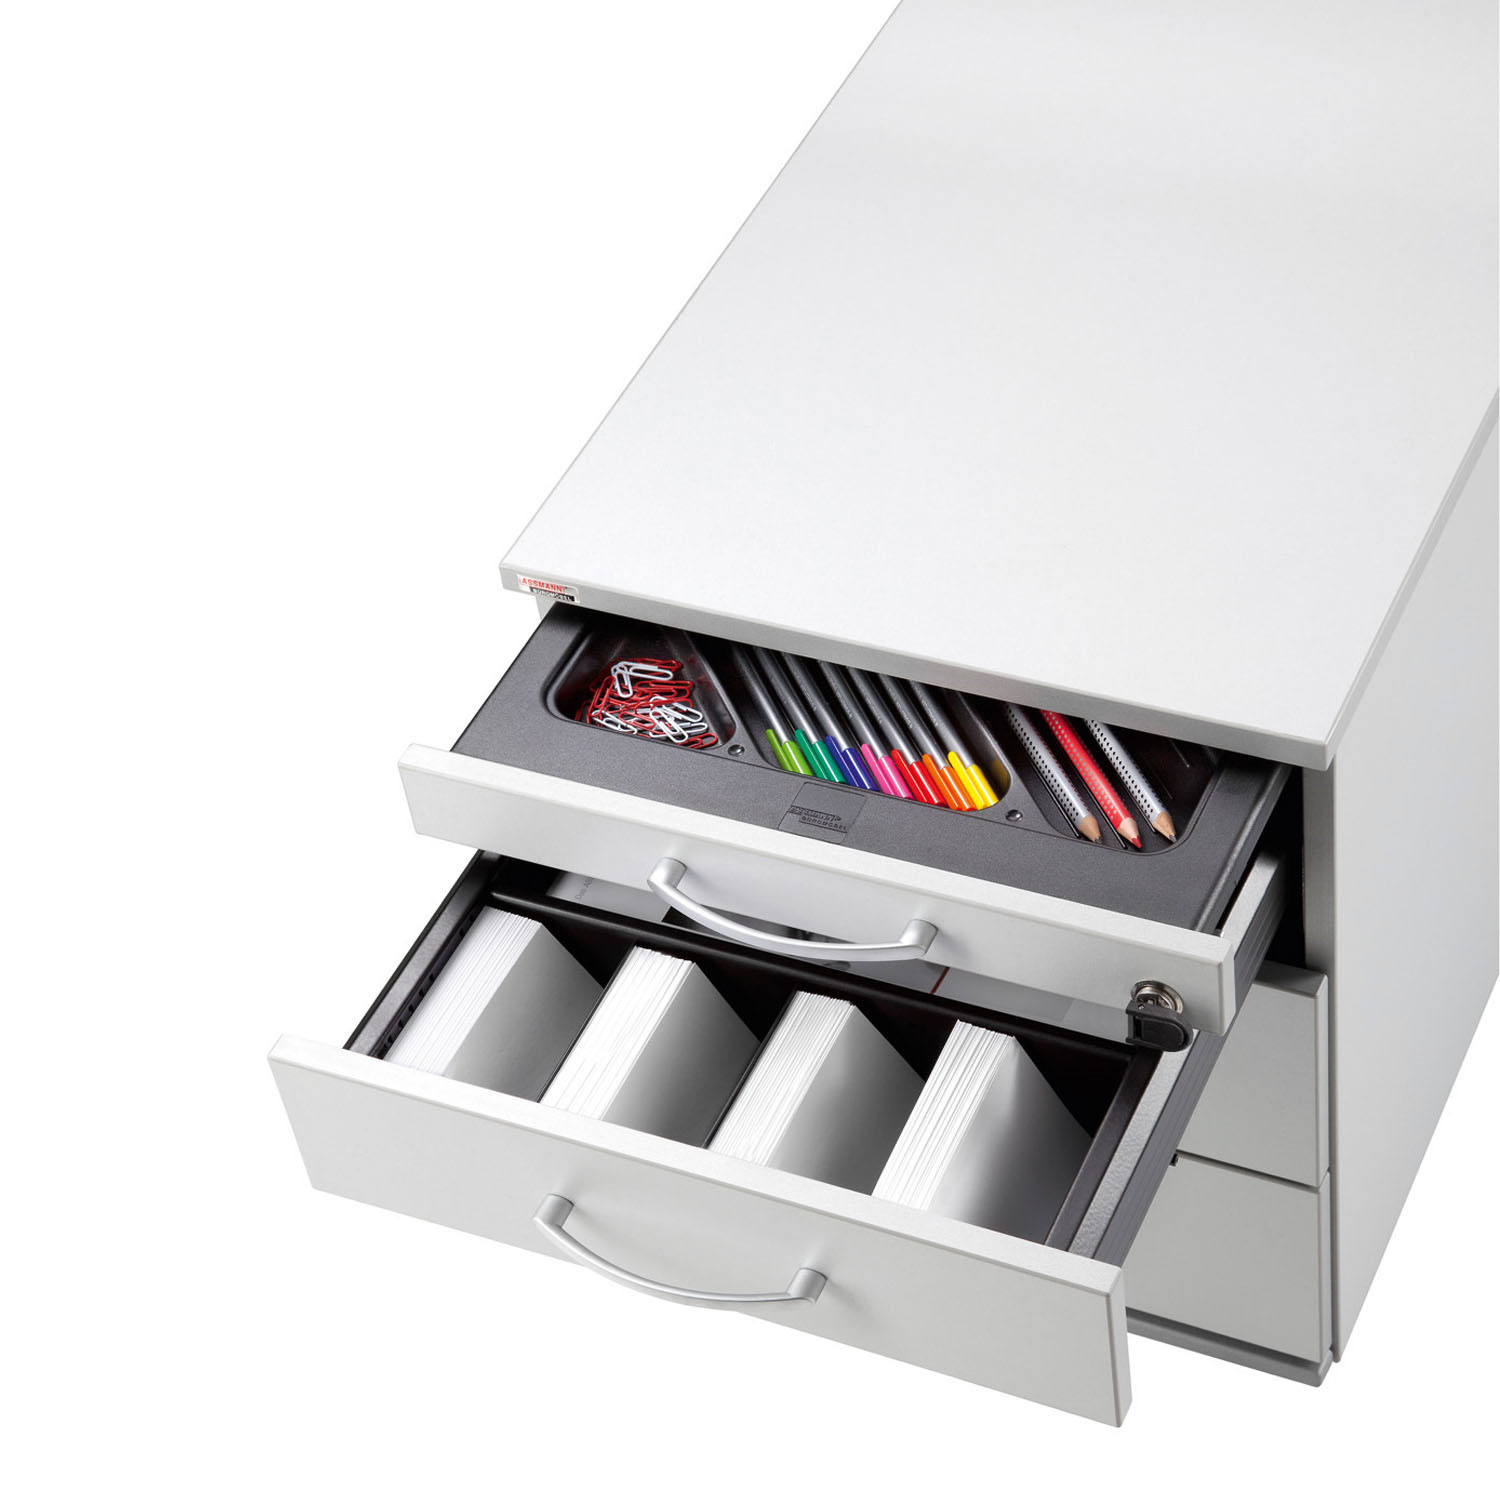 Pontis Carcase Drawer from Assmann